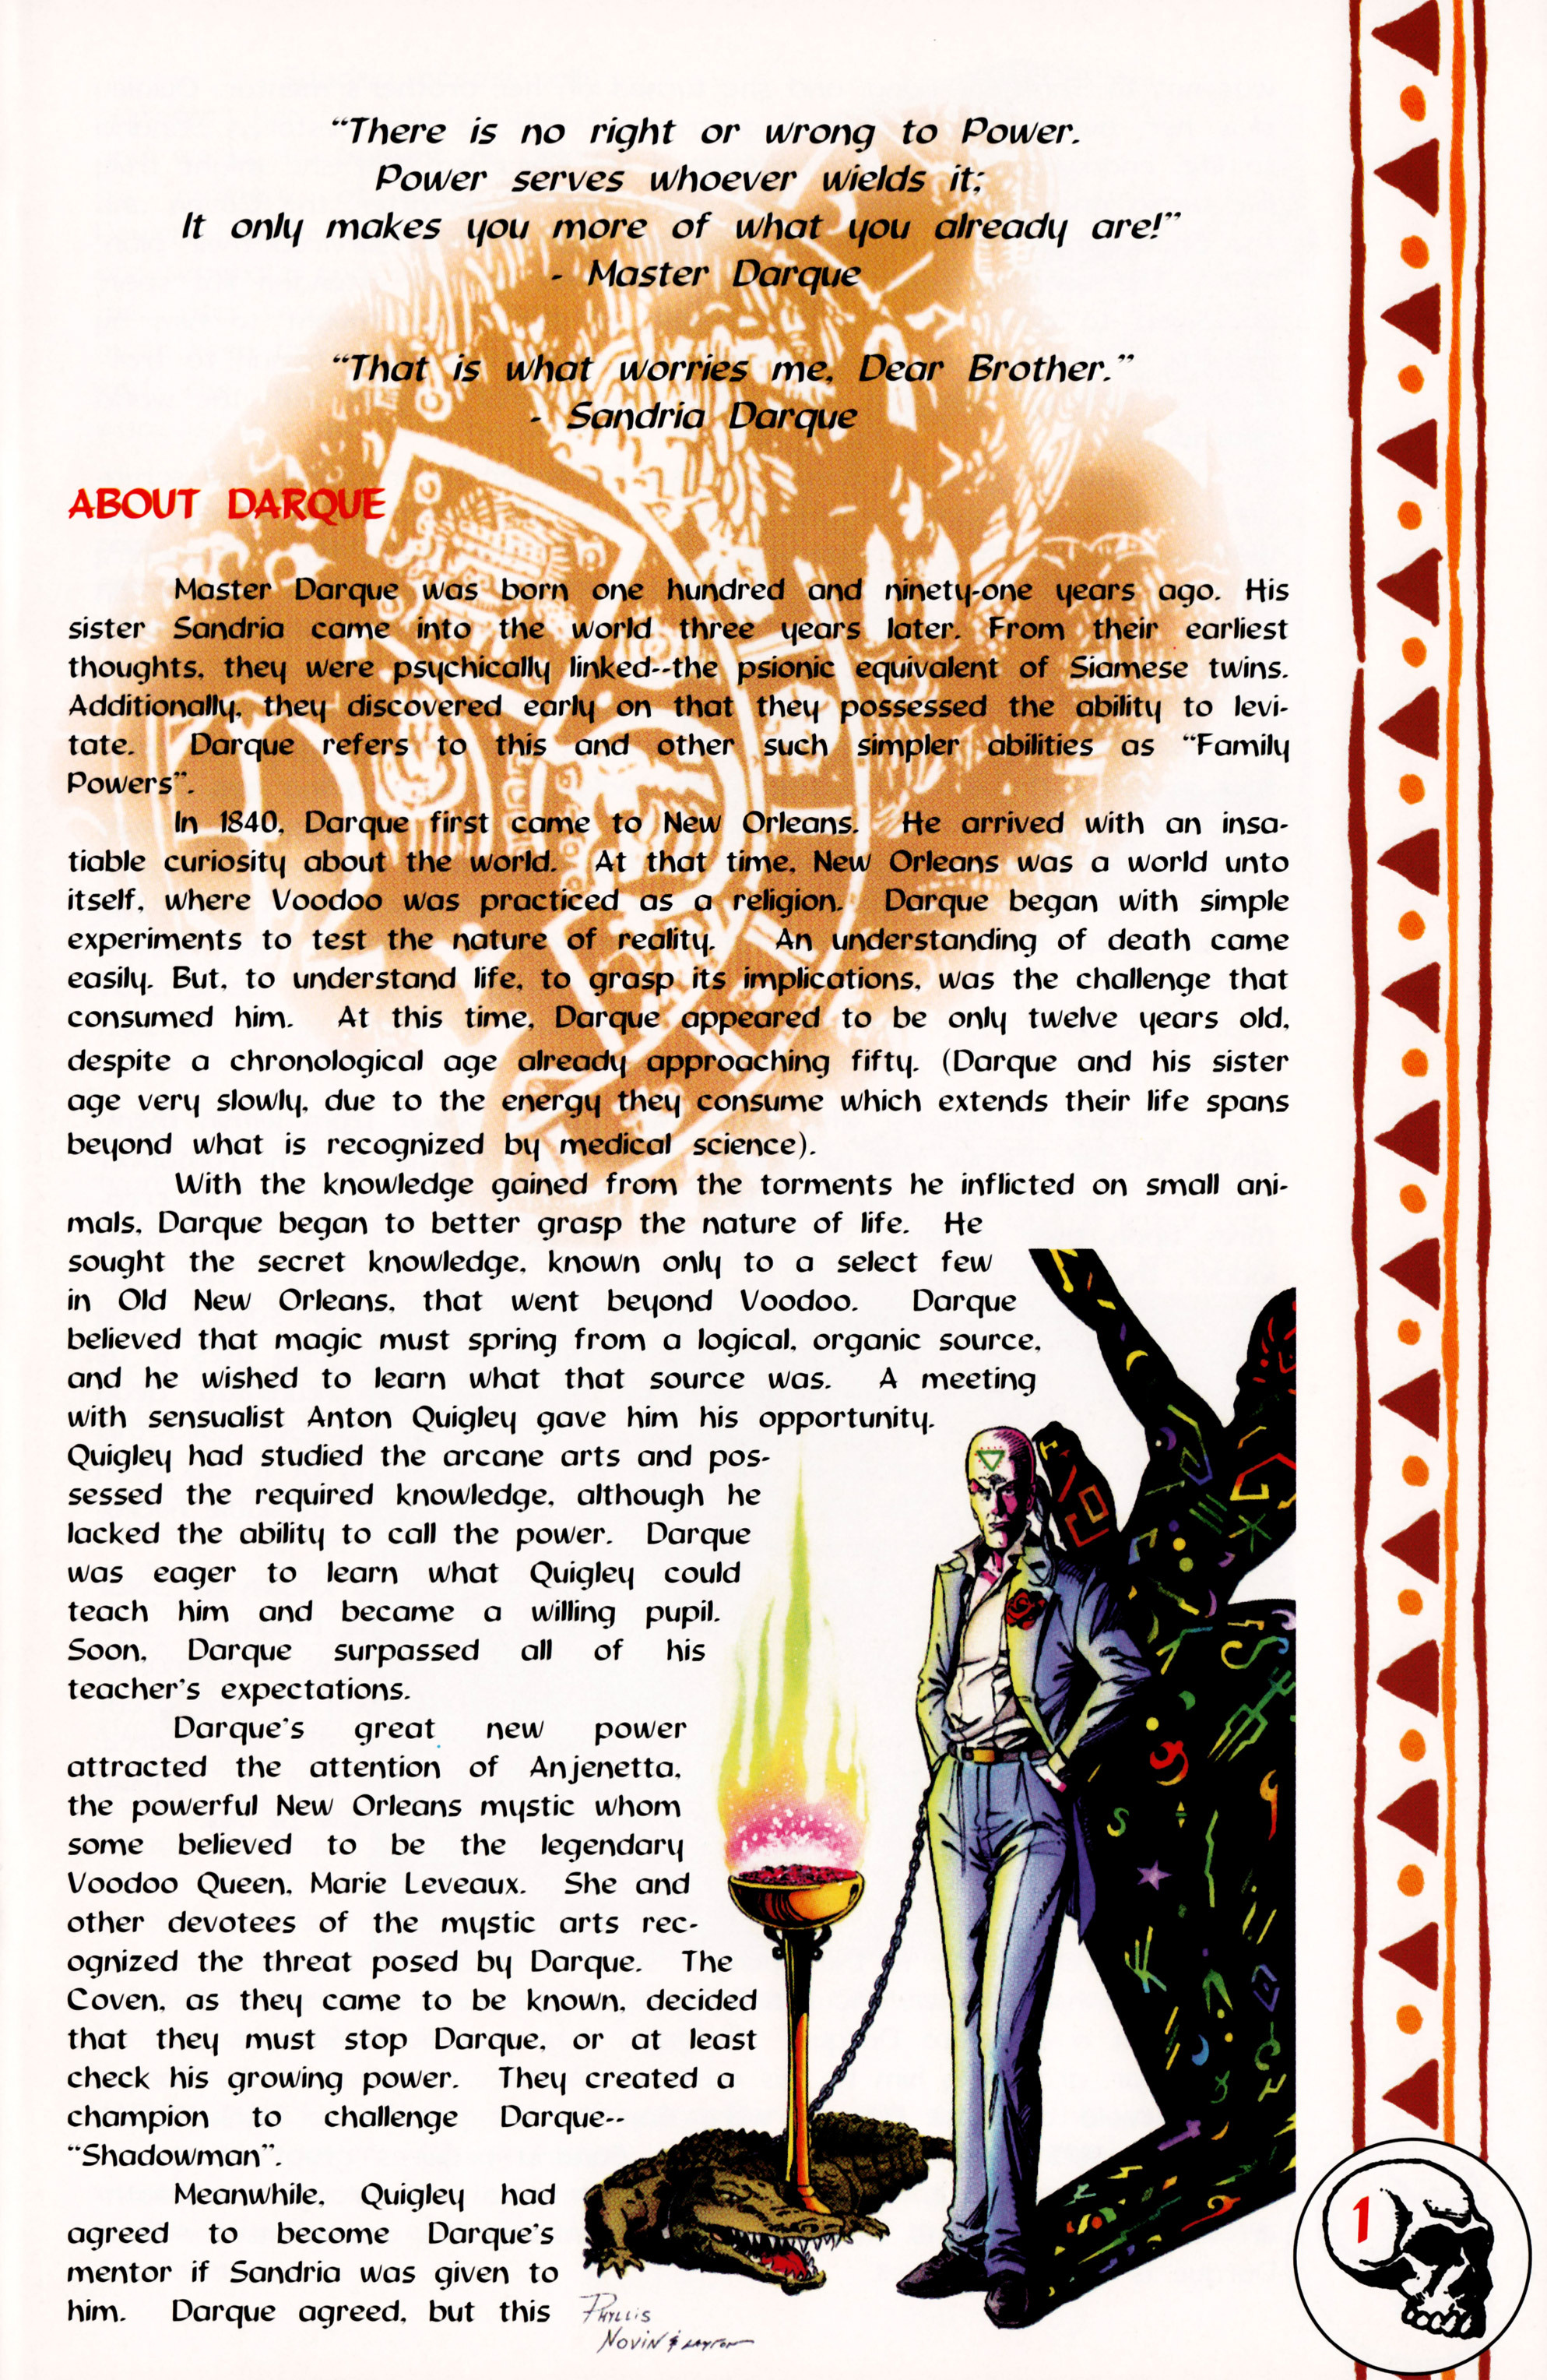 Read online Darque Passages comic -  Issue # Full - 3